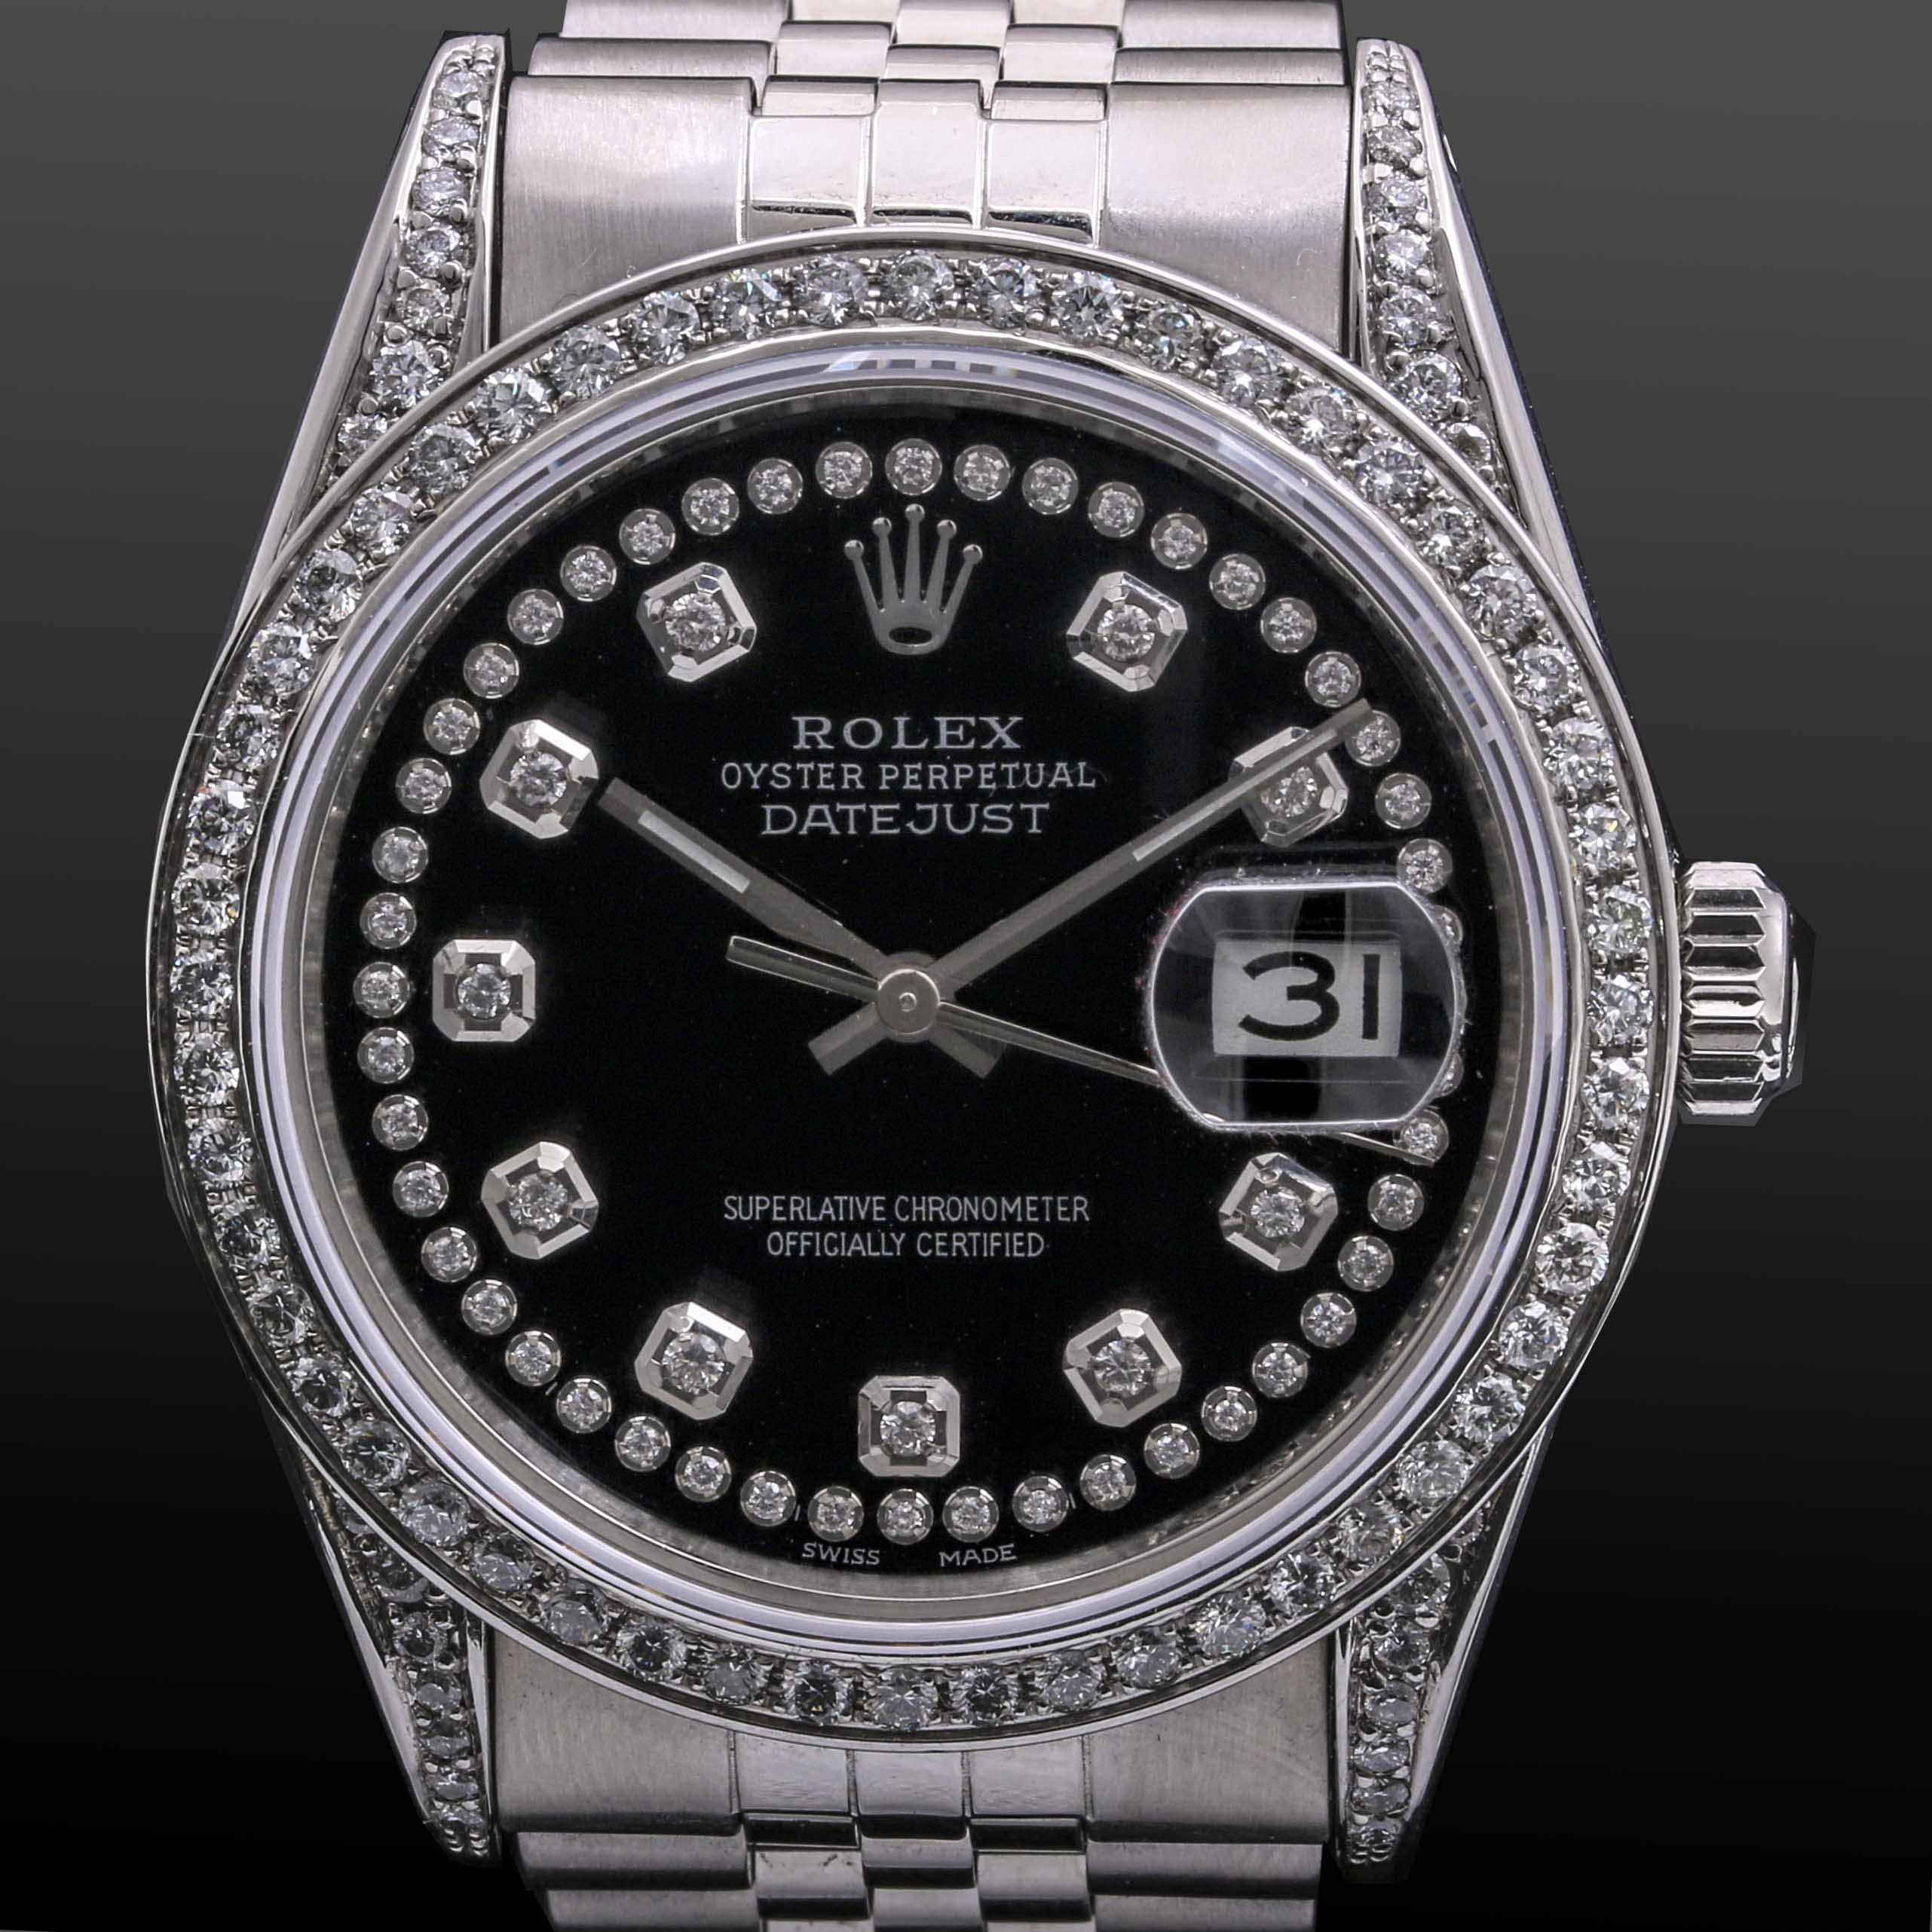 Stainless Steel 1.79 CTW Diamond Rolex Oyster Perpetual Datejust Wristwatch